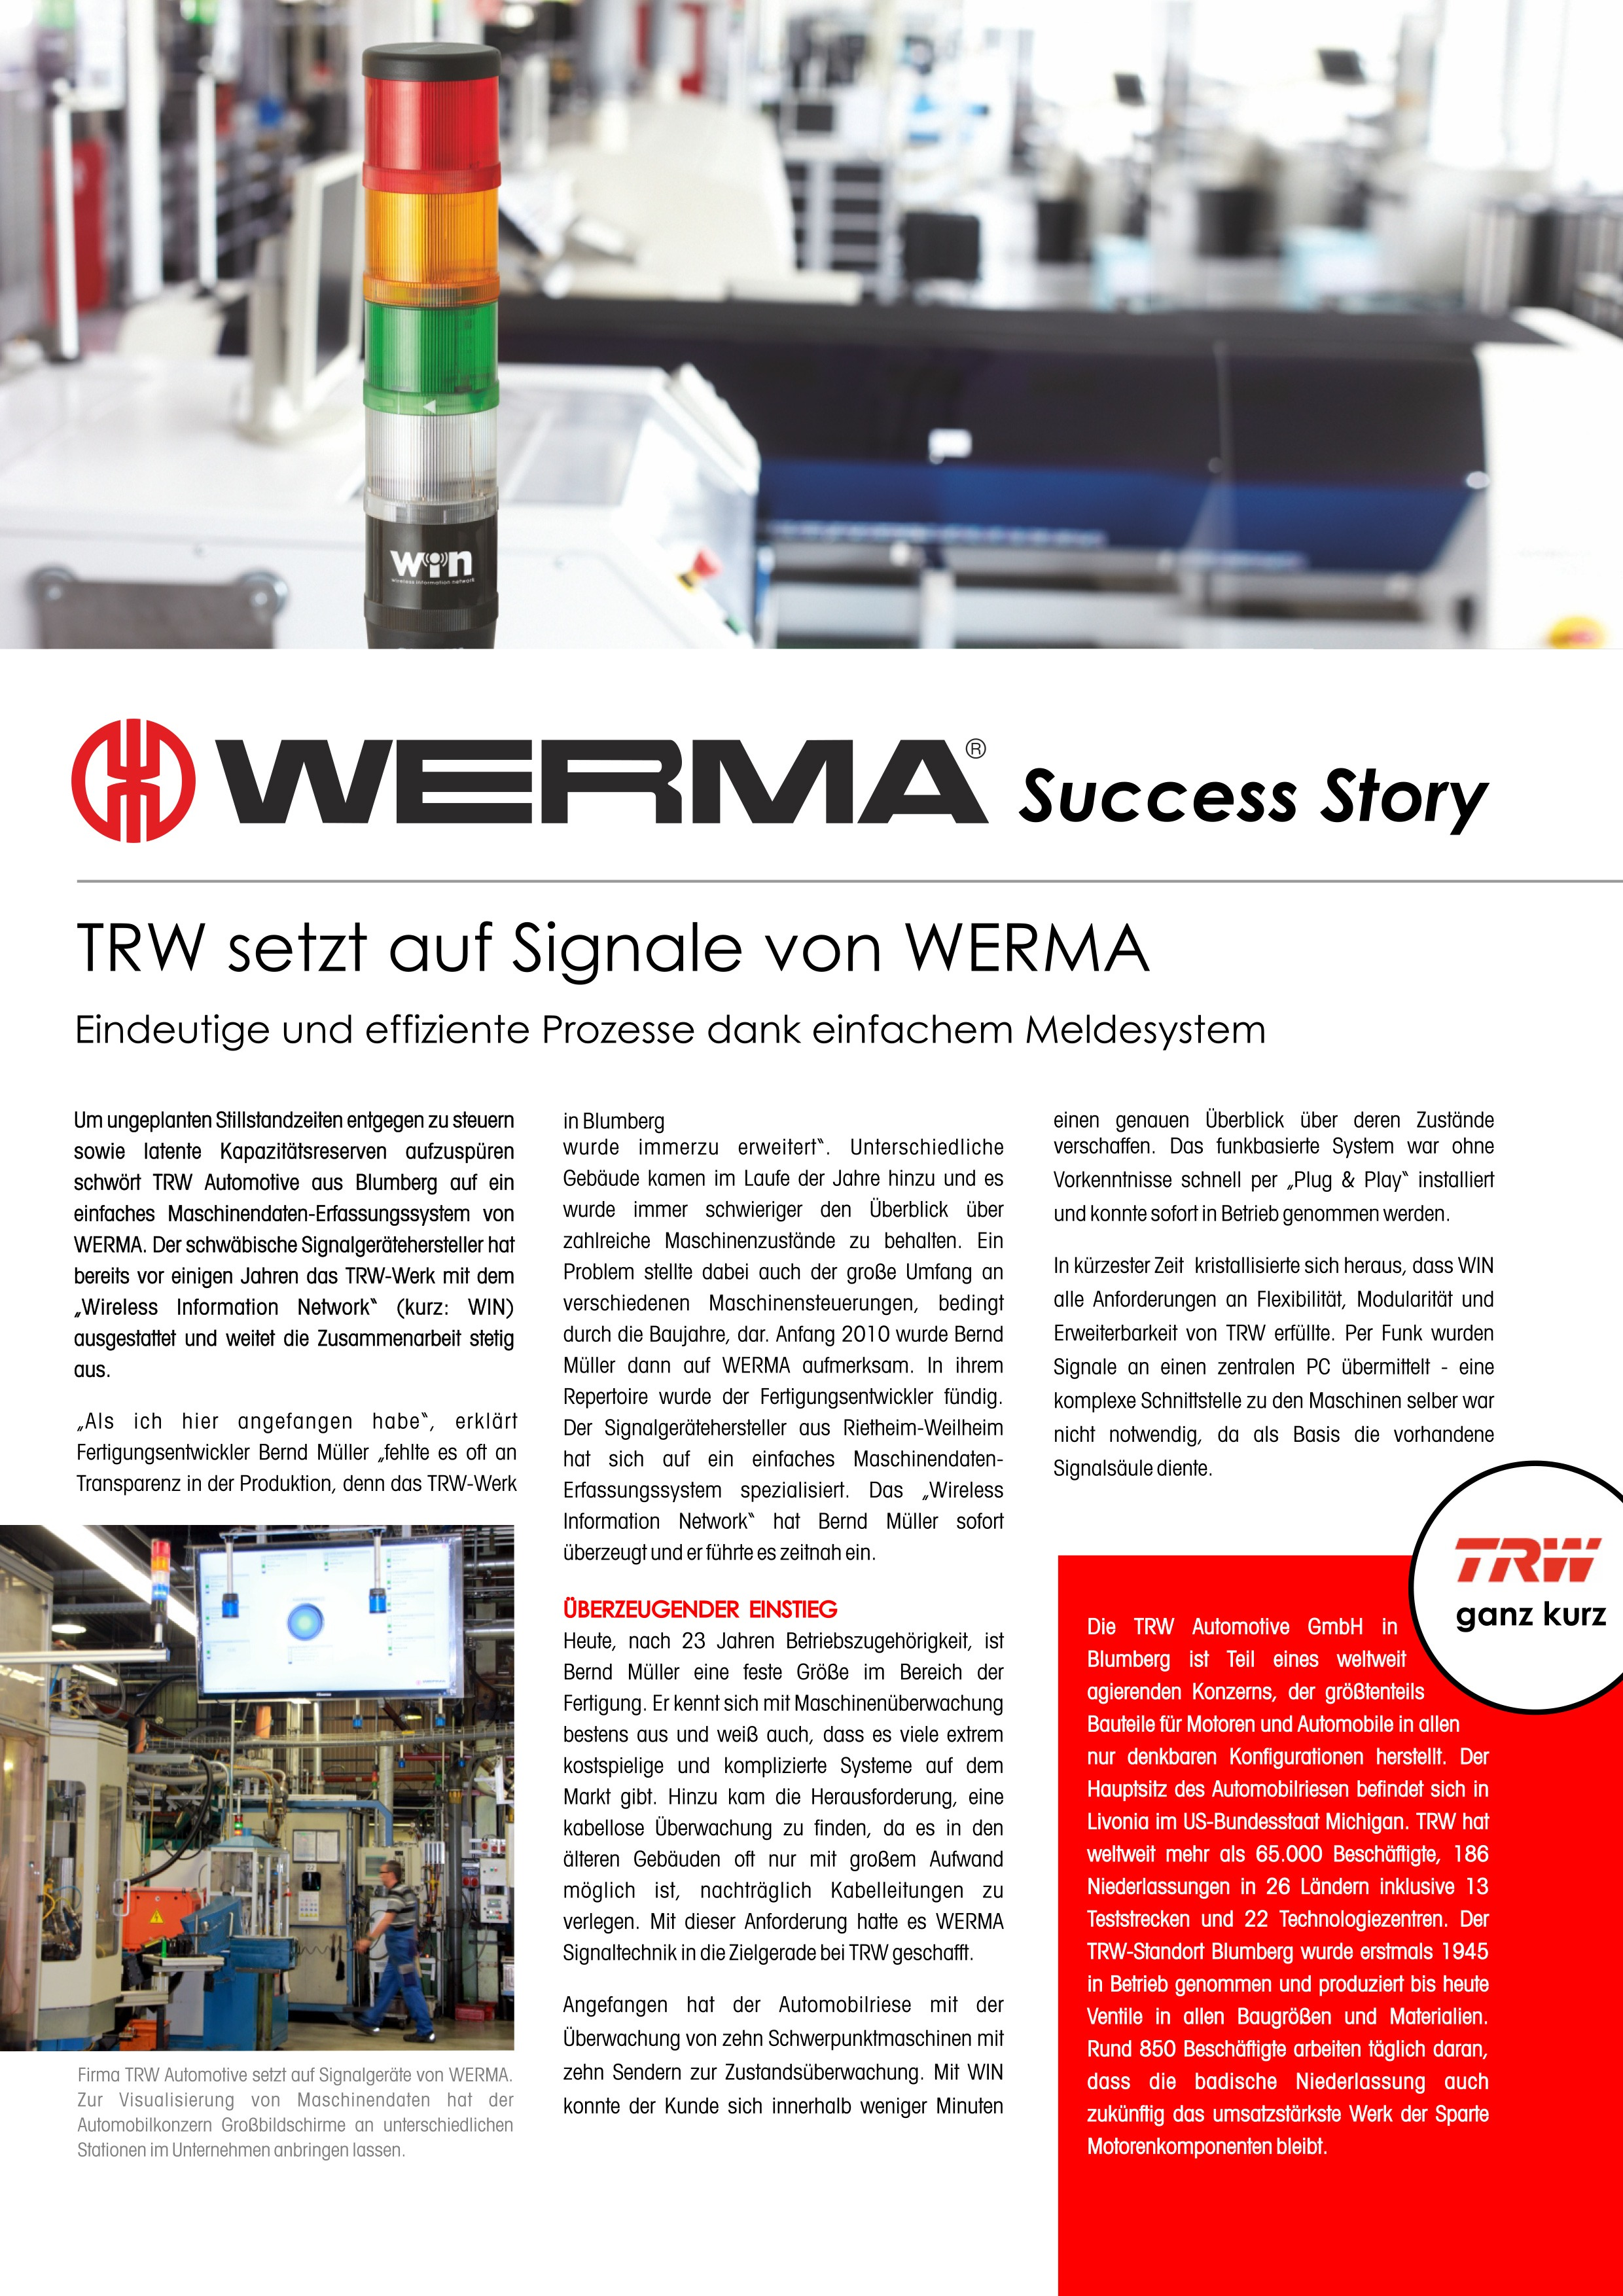 TRW - TRW calls for action with the help of WERMA